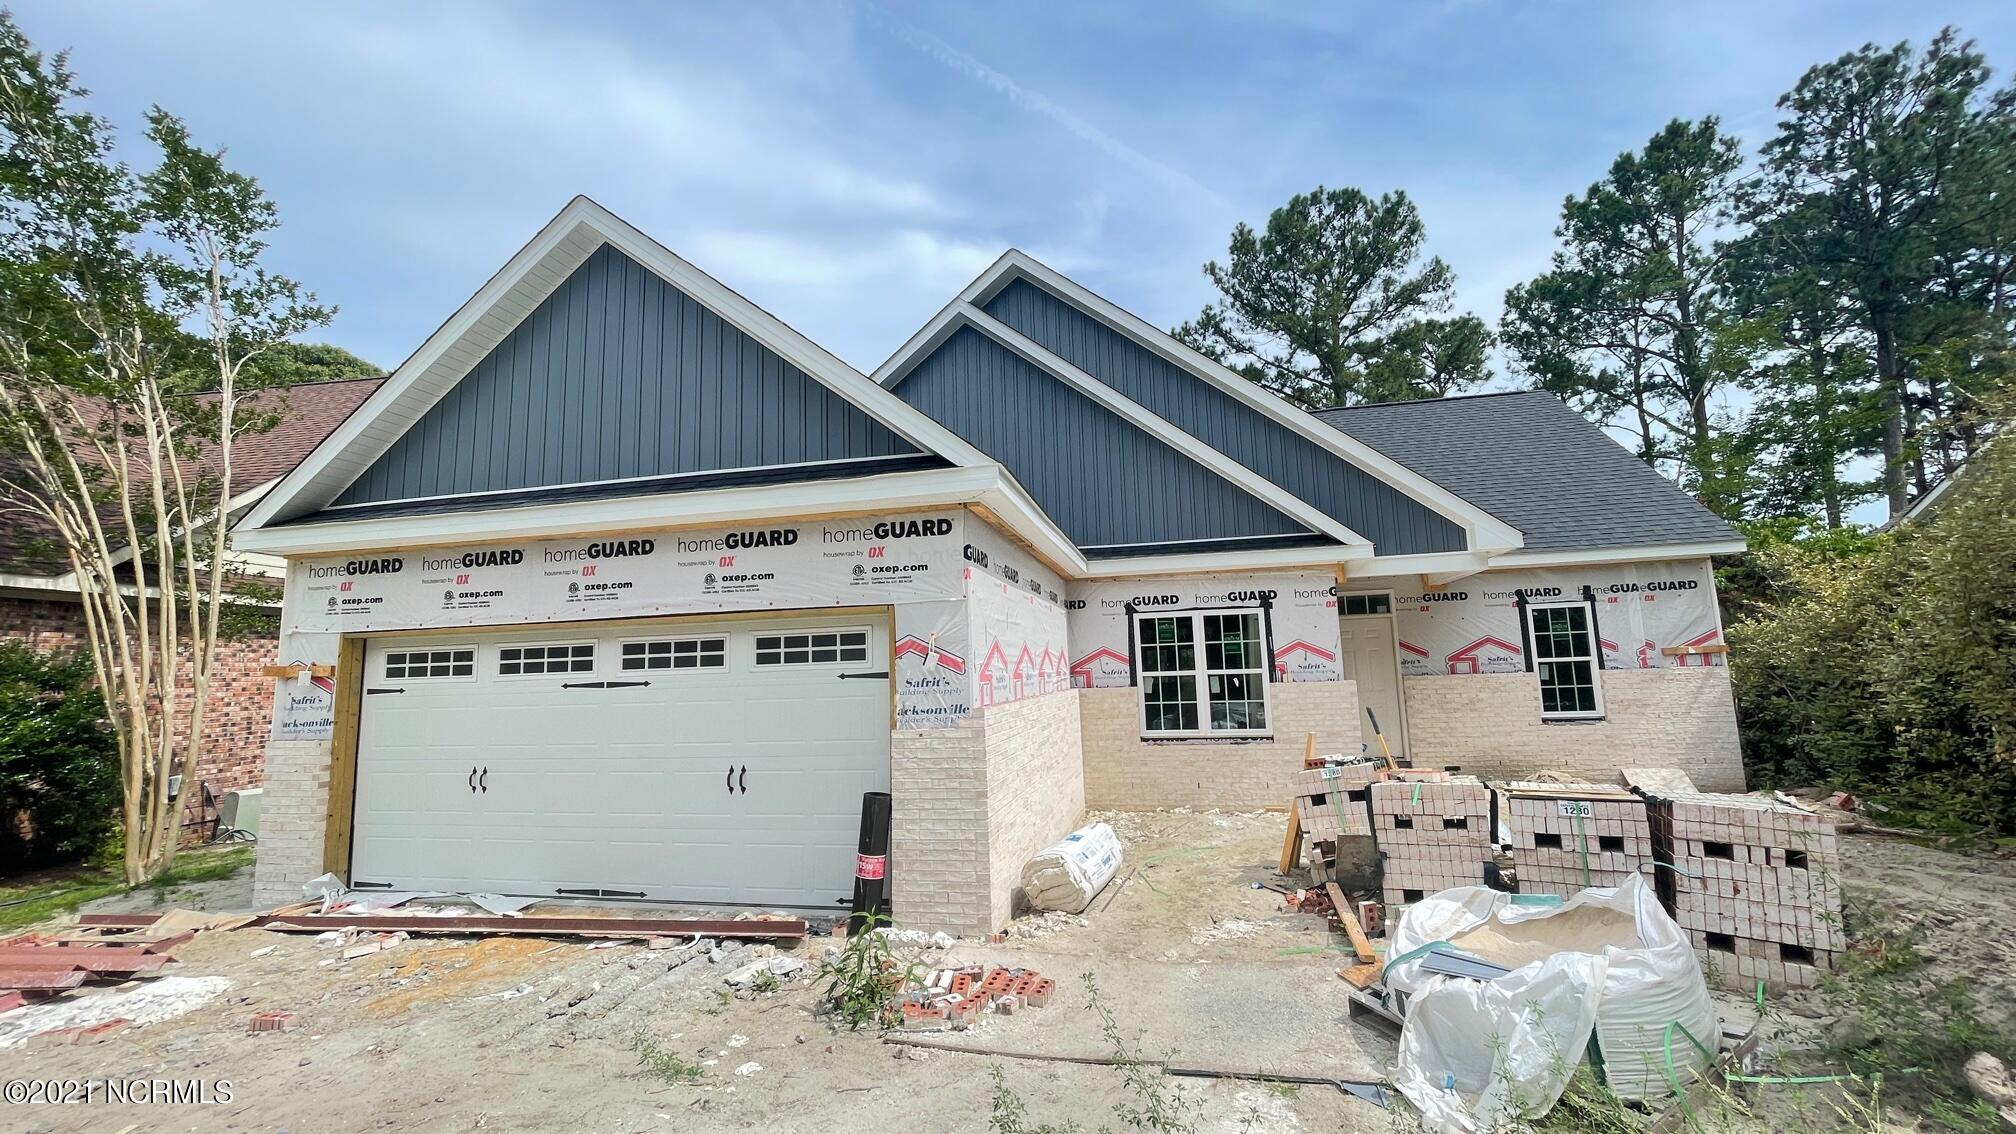 This is a new construction home in the desirable North Shore Country Club community.  4 bedrooms, 3 full bathrooms and bonus room (just under 2300 sqft) sitting right on the golf course! This home features upgrades such as a gas stove, granite kitchen tops, tankless water heater, full LVP flooring throughout the down stairs. There is also a buy-in option for club membership upon closing at the cost of $1,500, giving access to all clubhouse amenities. Please see attached document ''Upgrades and Features '' for a full list of upgrades.